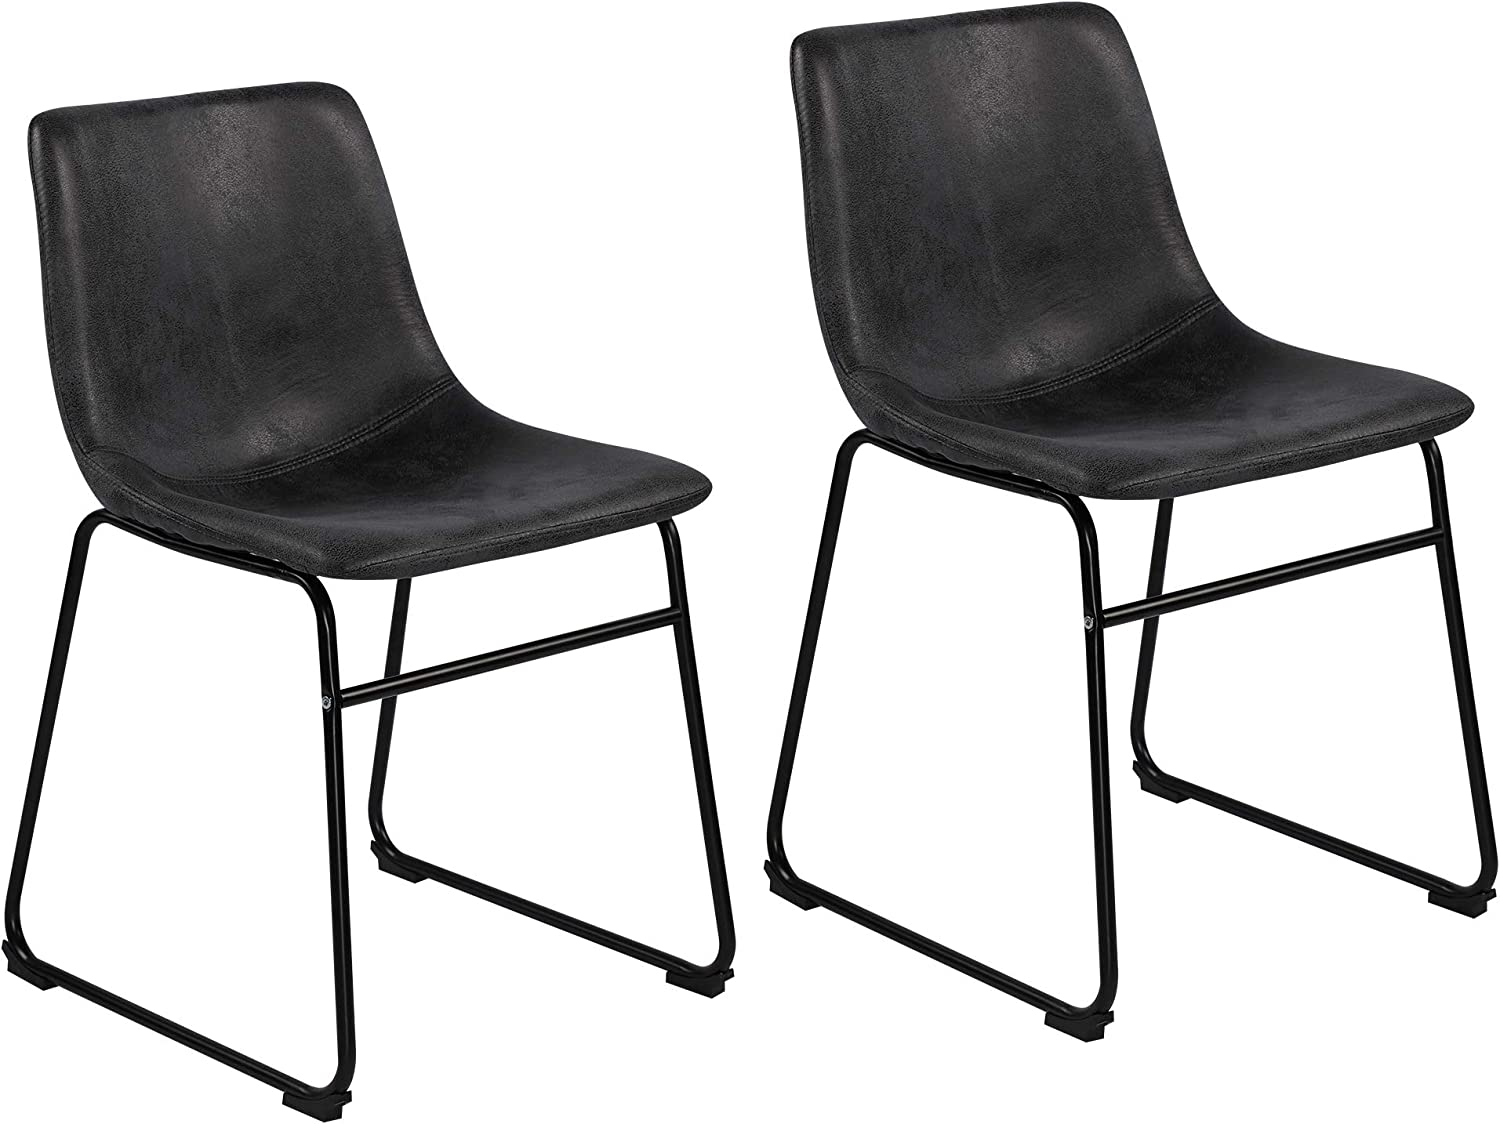 Amazon Com Lssbought Vintage Dining Chairs With Pu Leather Set Of 2 Gray Chairs